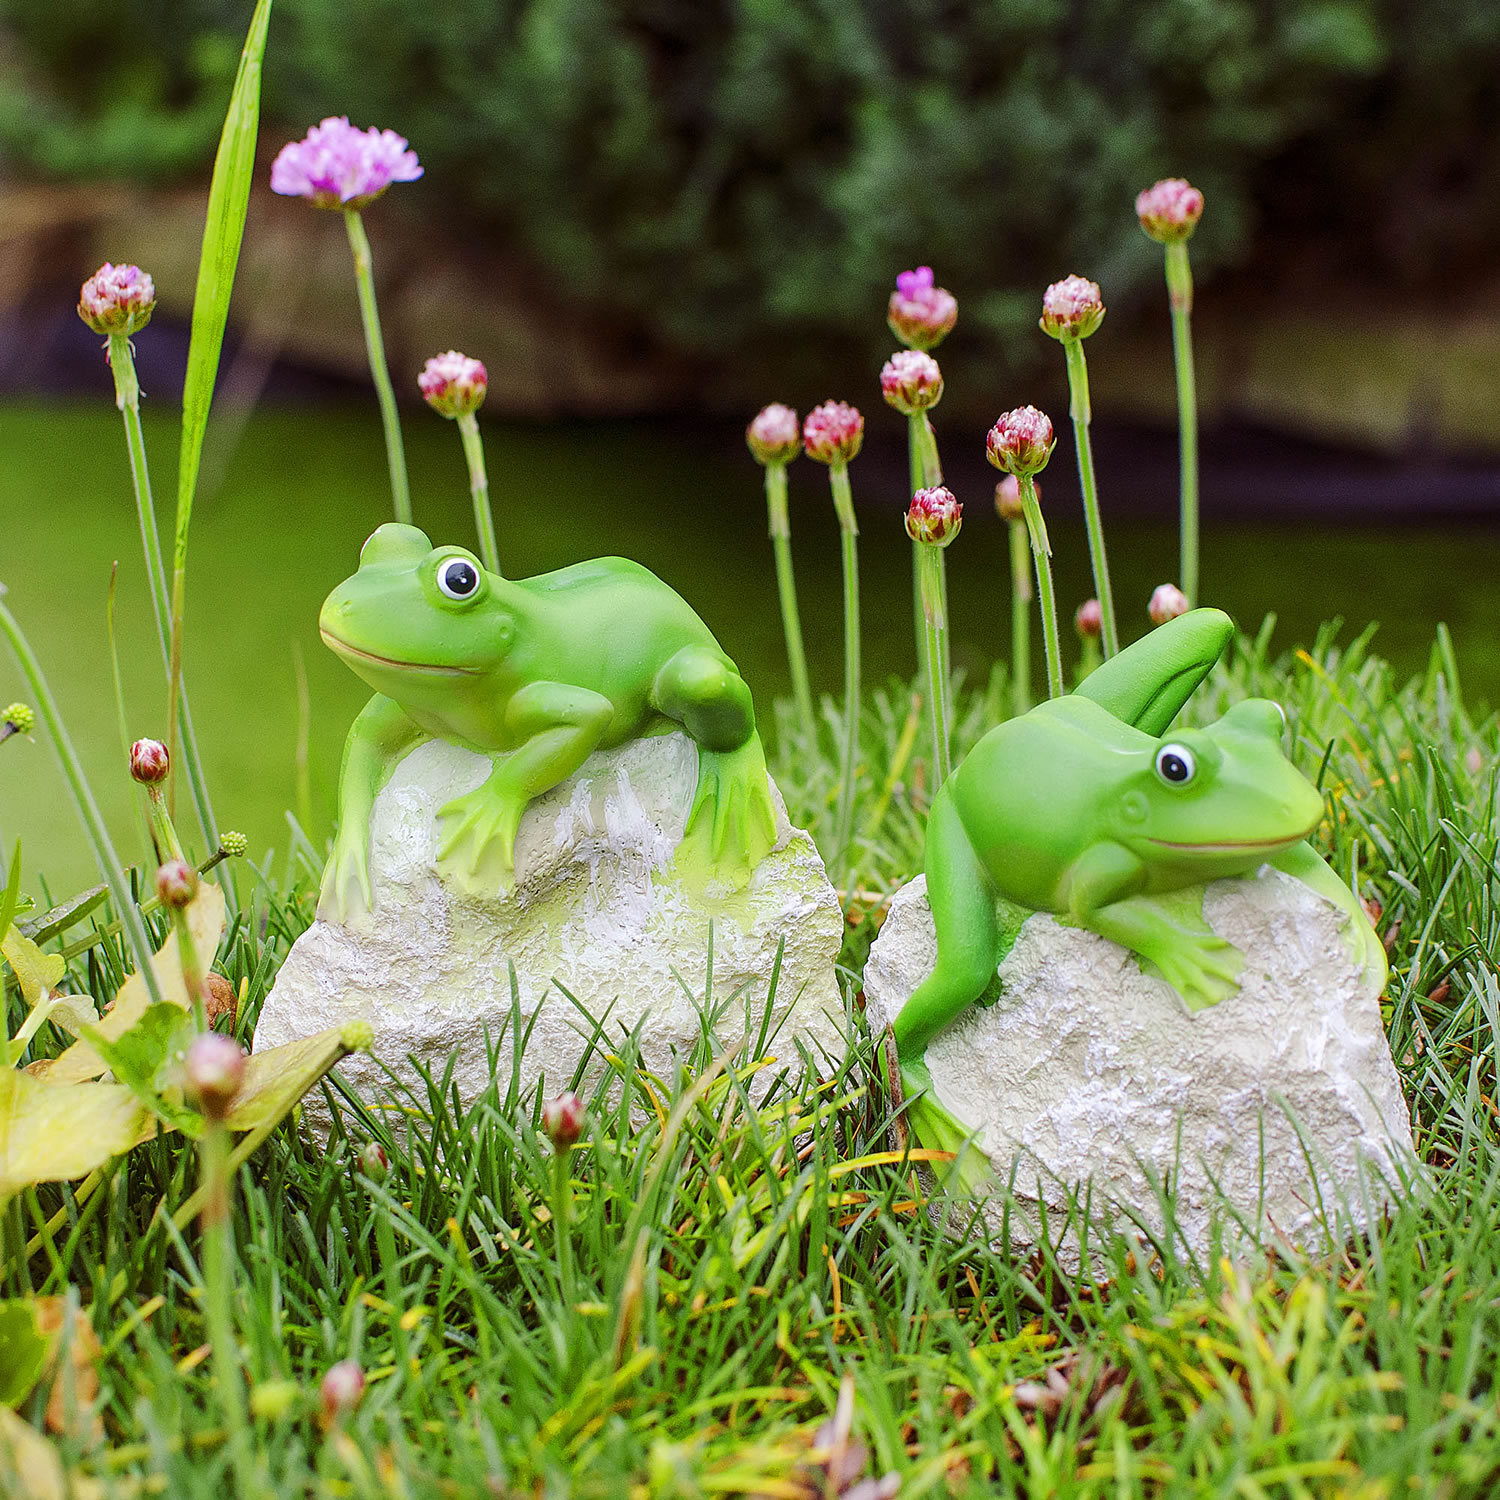 Leafy Leroy The Pair Of Frogs On Rocks Garden Ornament Set Garden4less Uk Shop